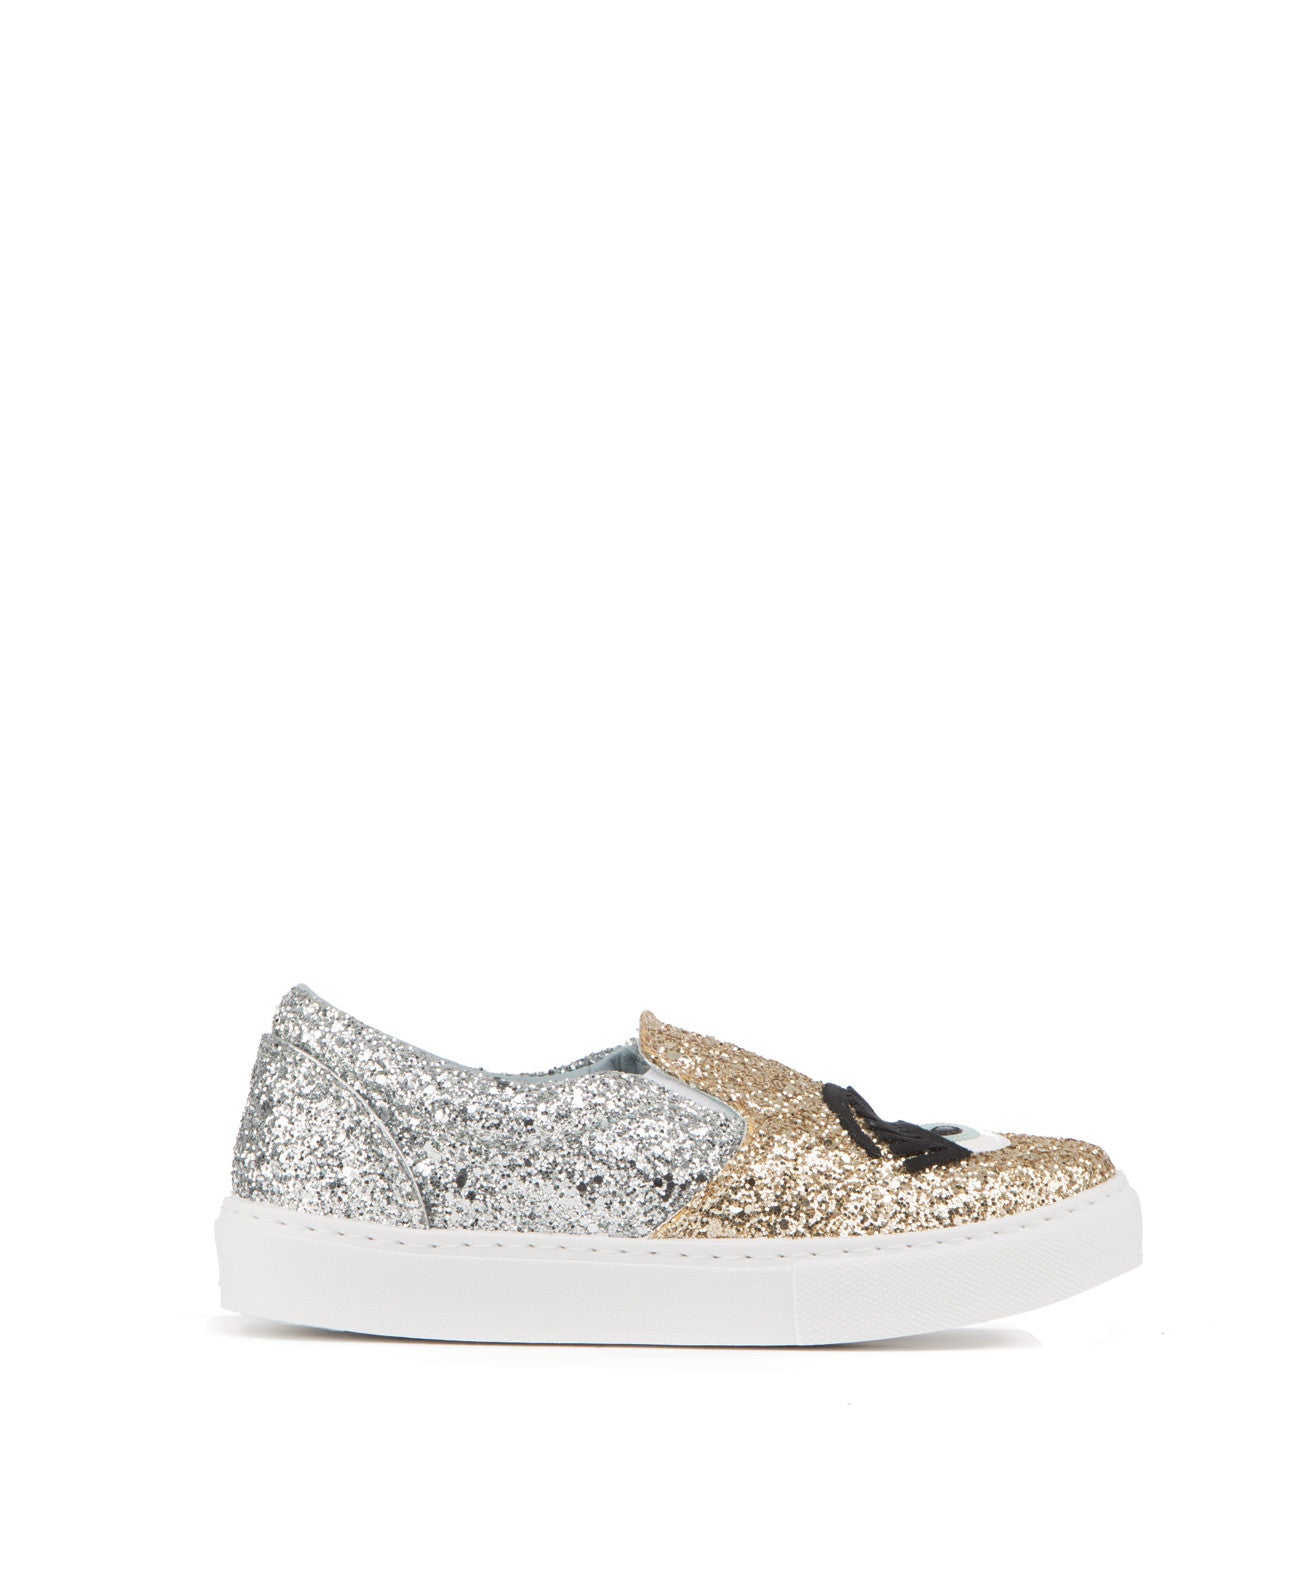 Two tone glitter slip on sneaker